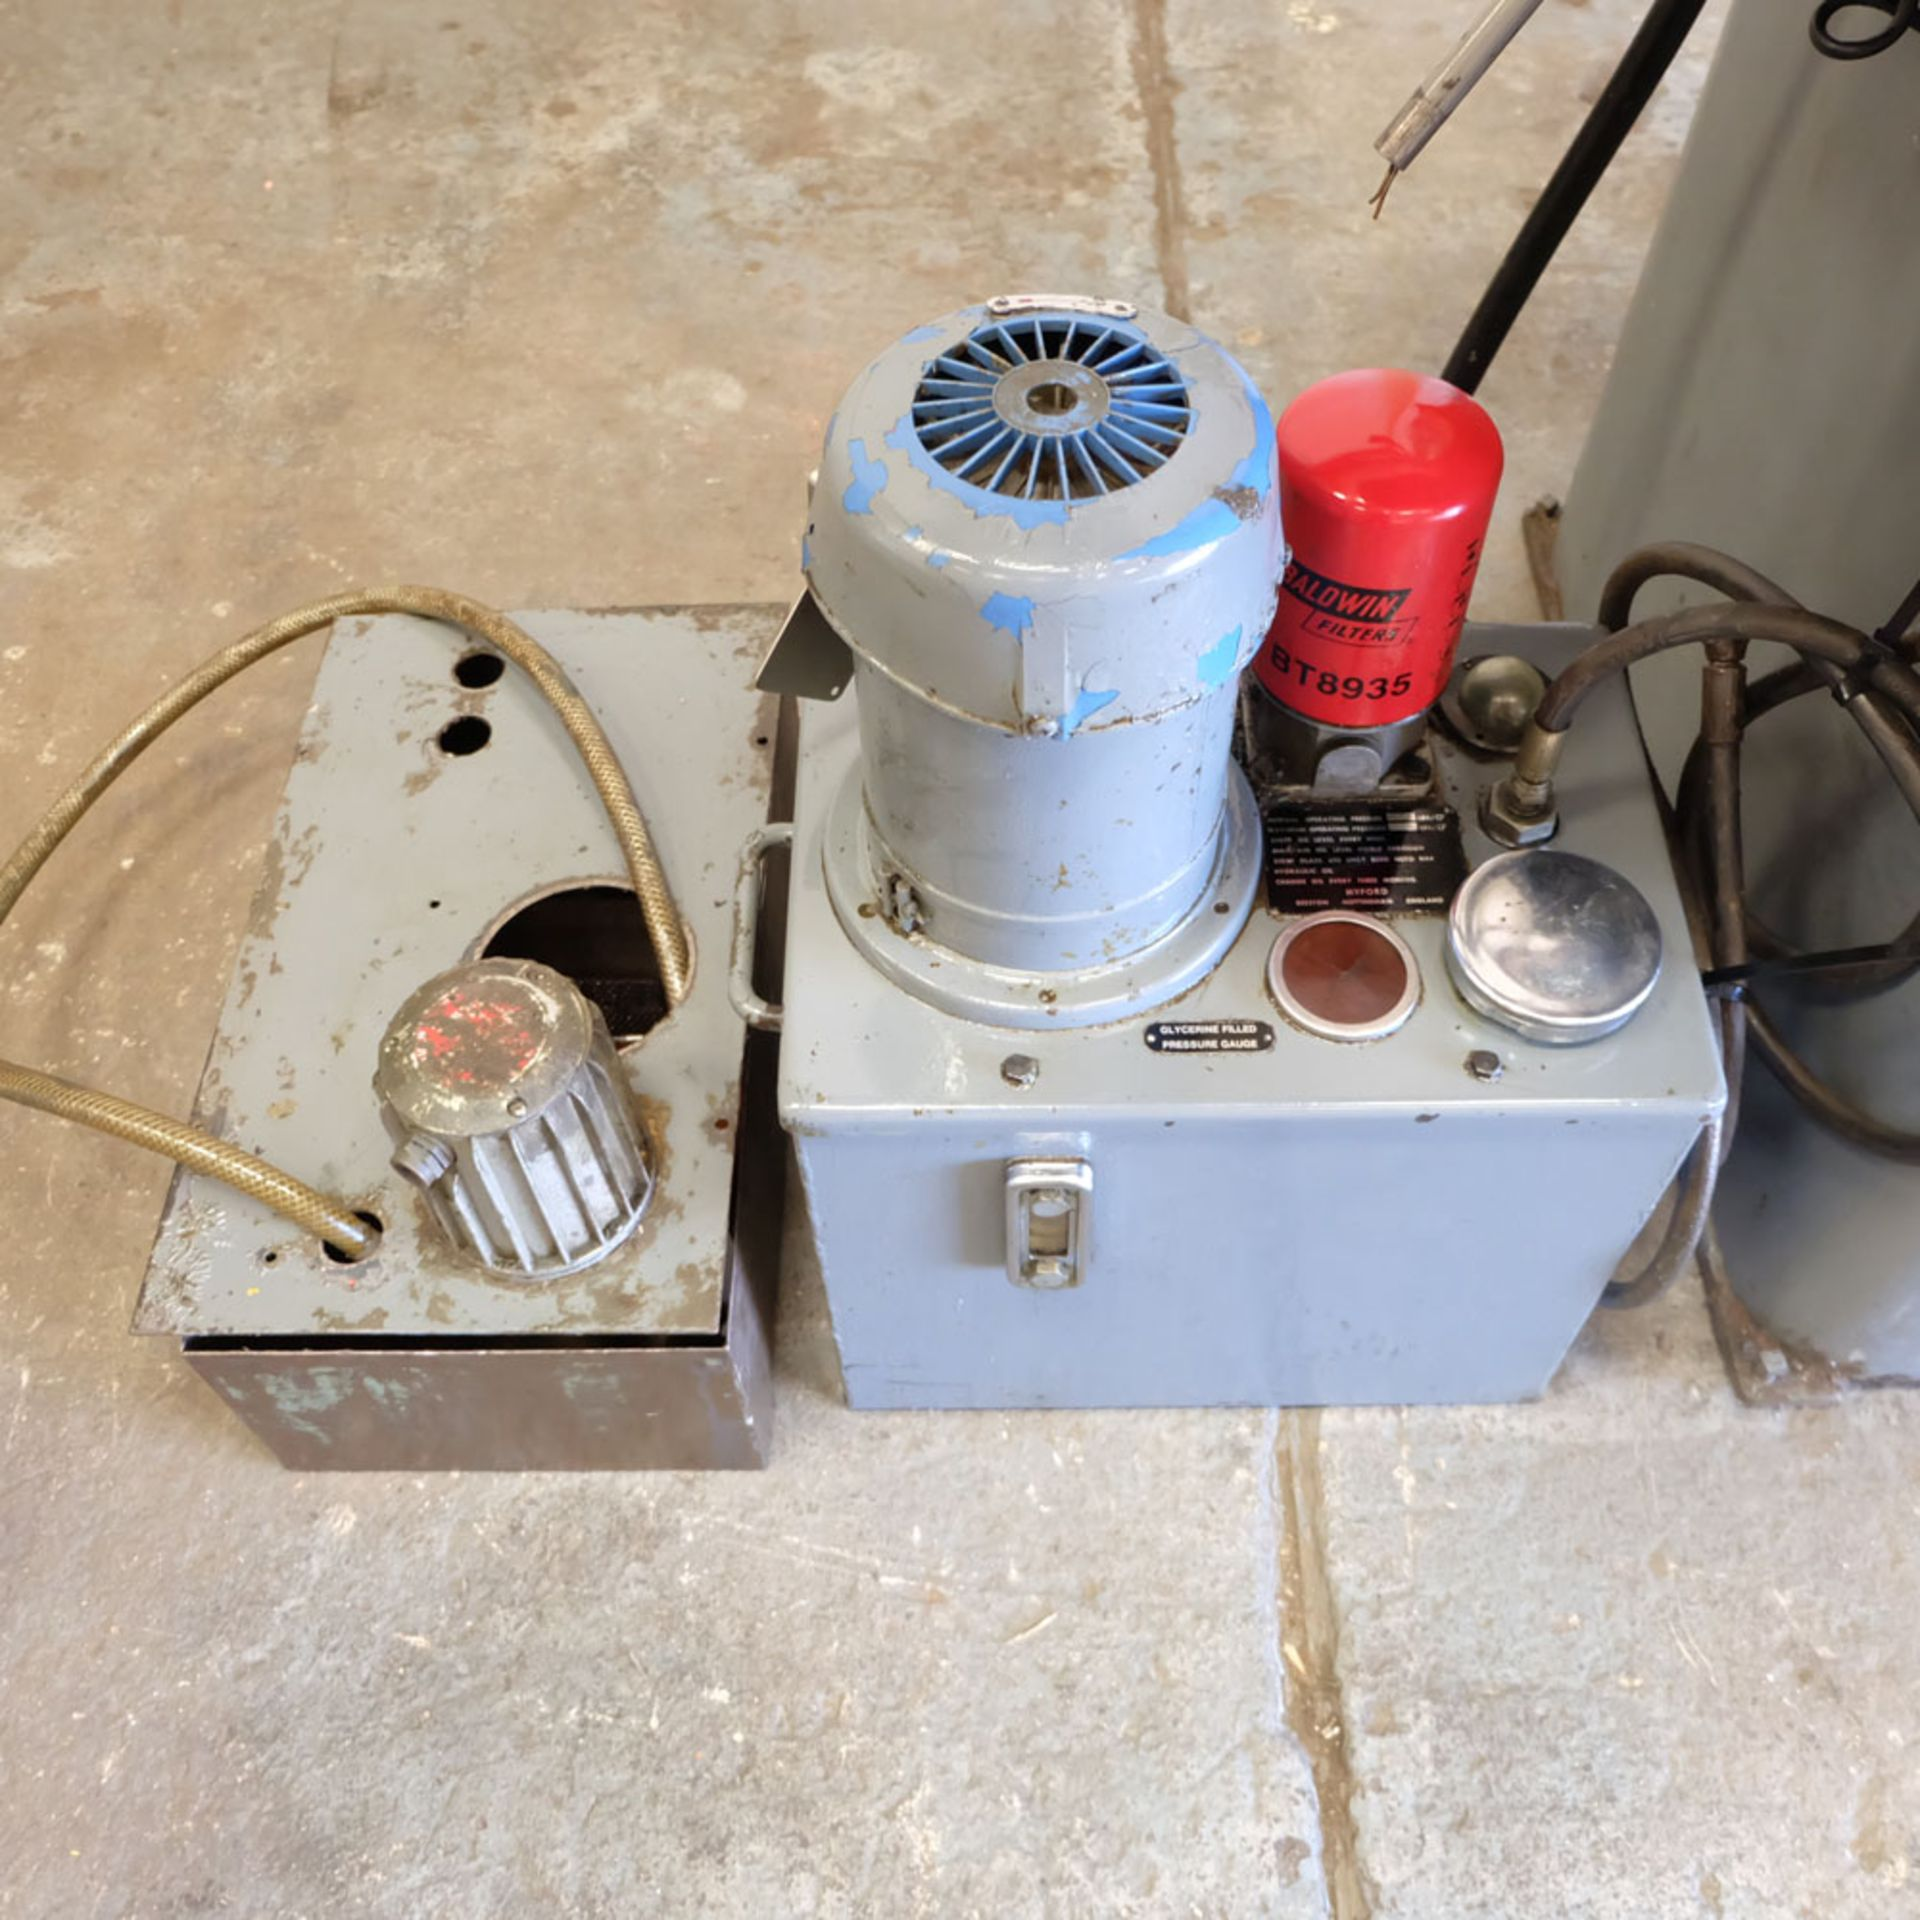 Myford Model MG12-HPT Automatic Cycle Traverse & Plunge Grinder. - Image 7 of 8